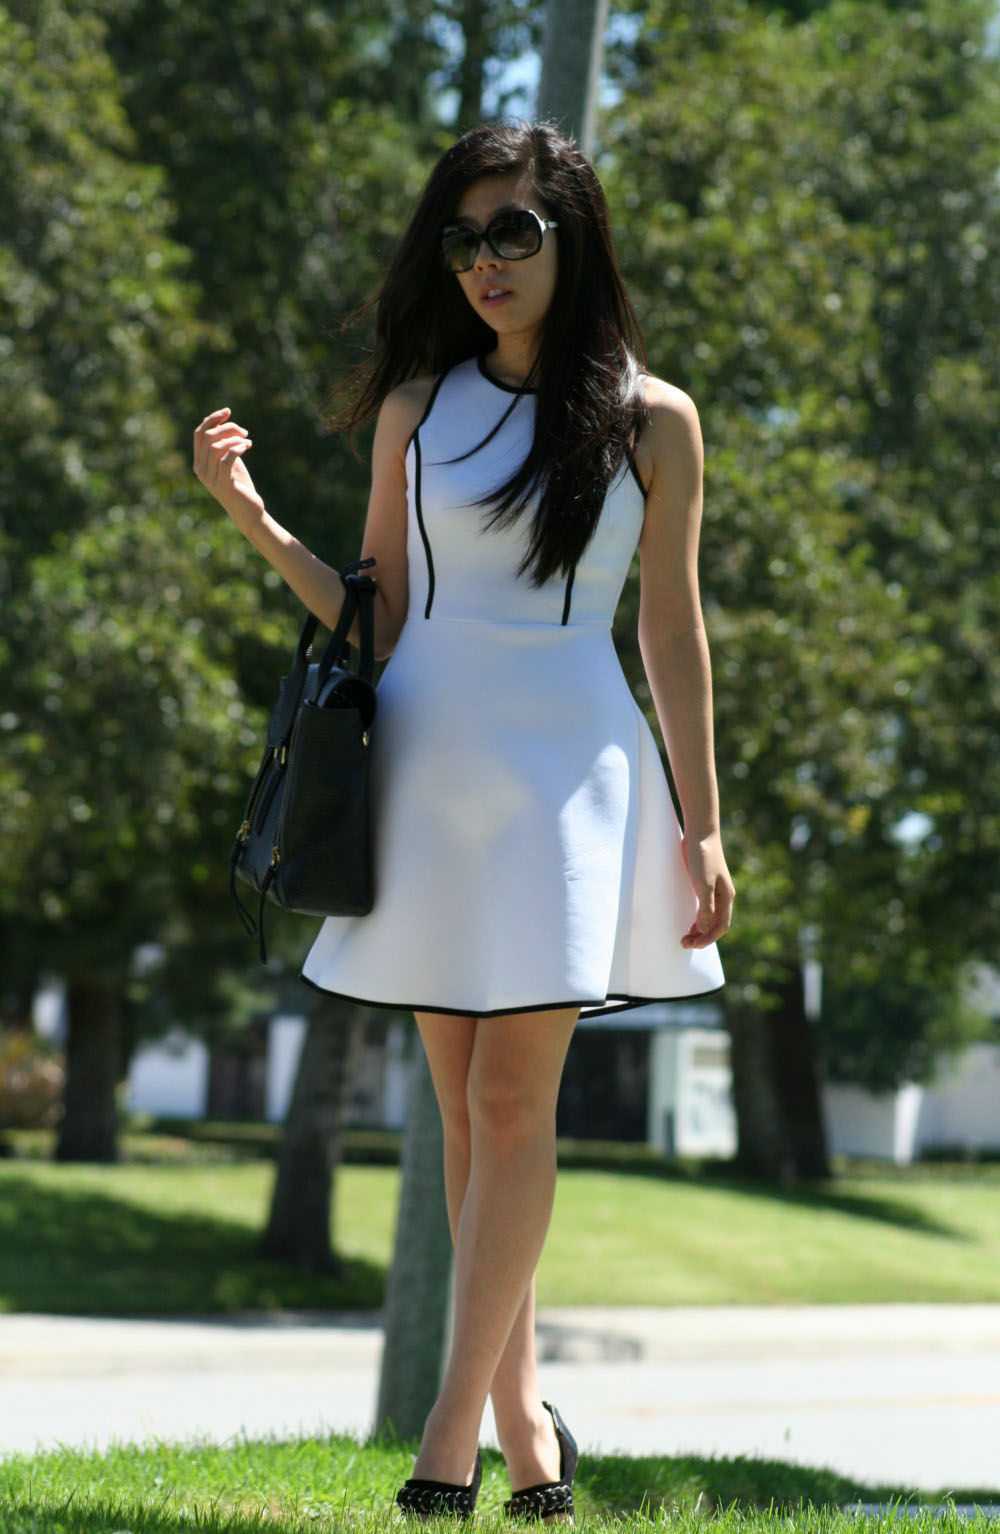 White Dress and Black Details